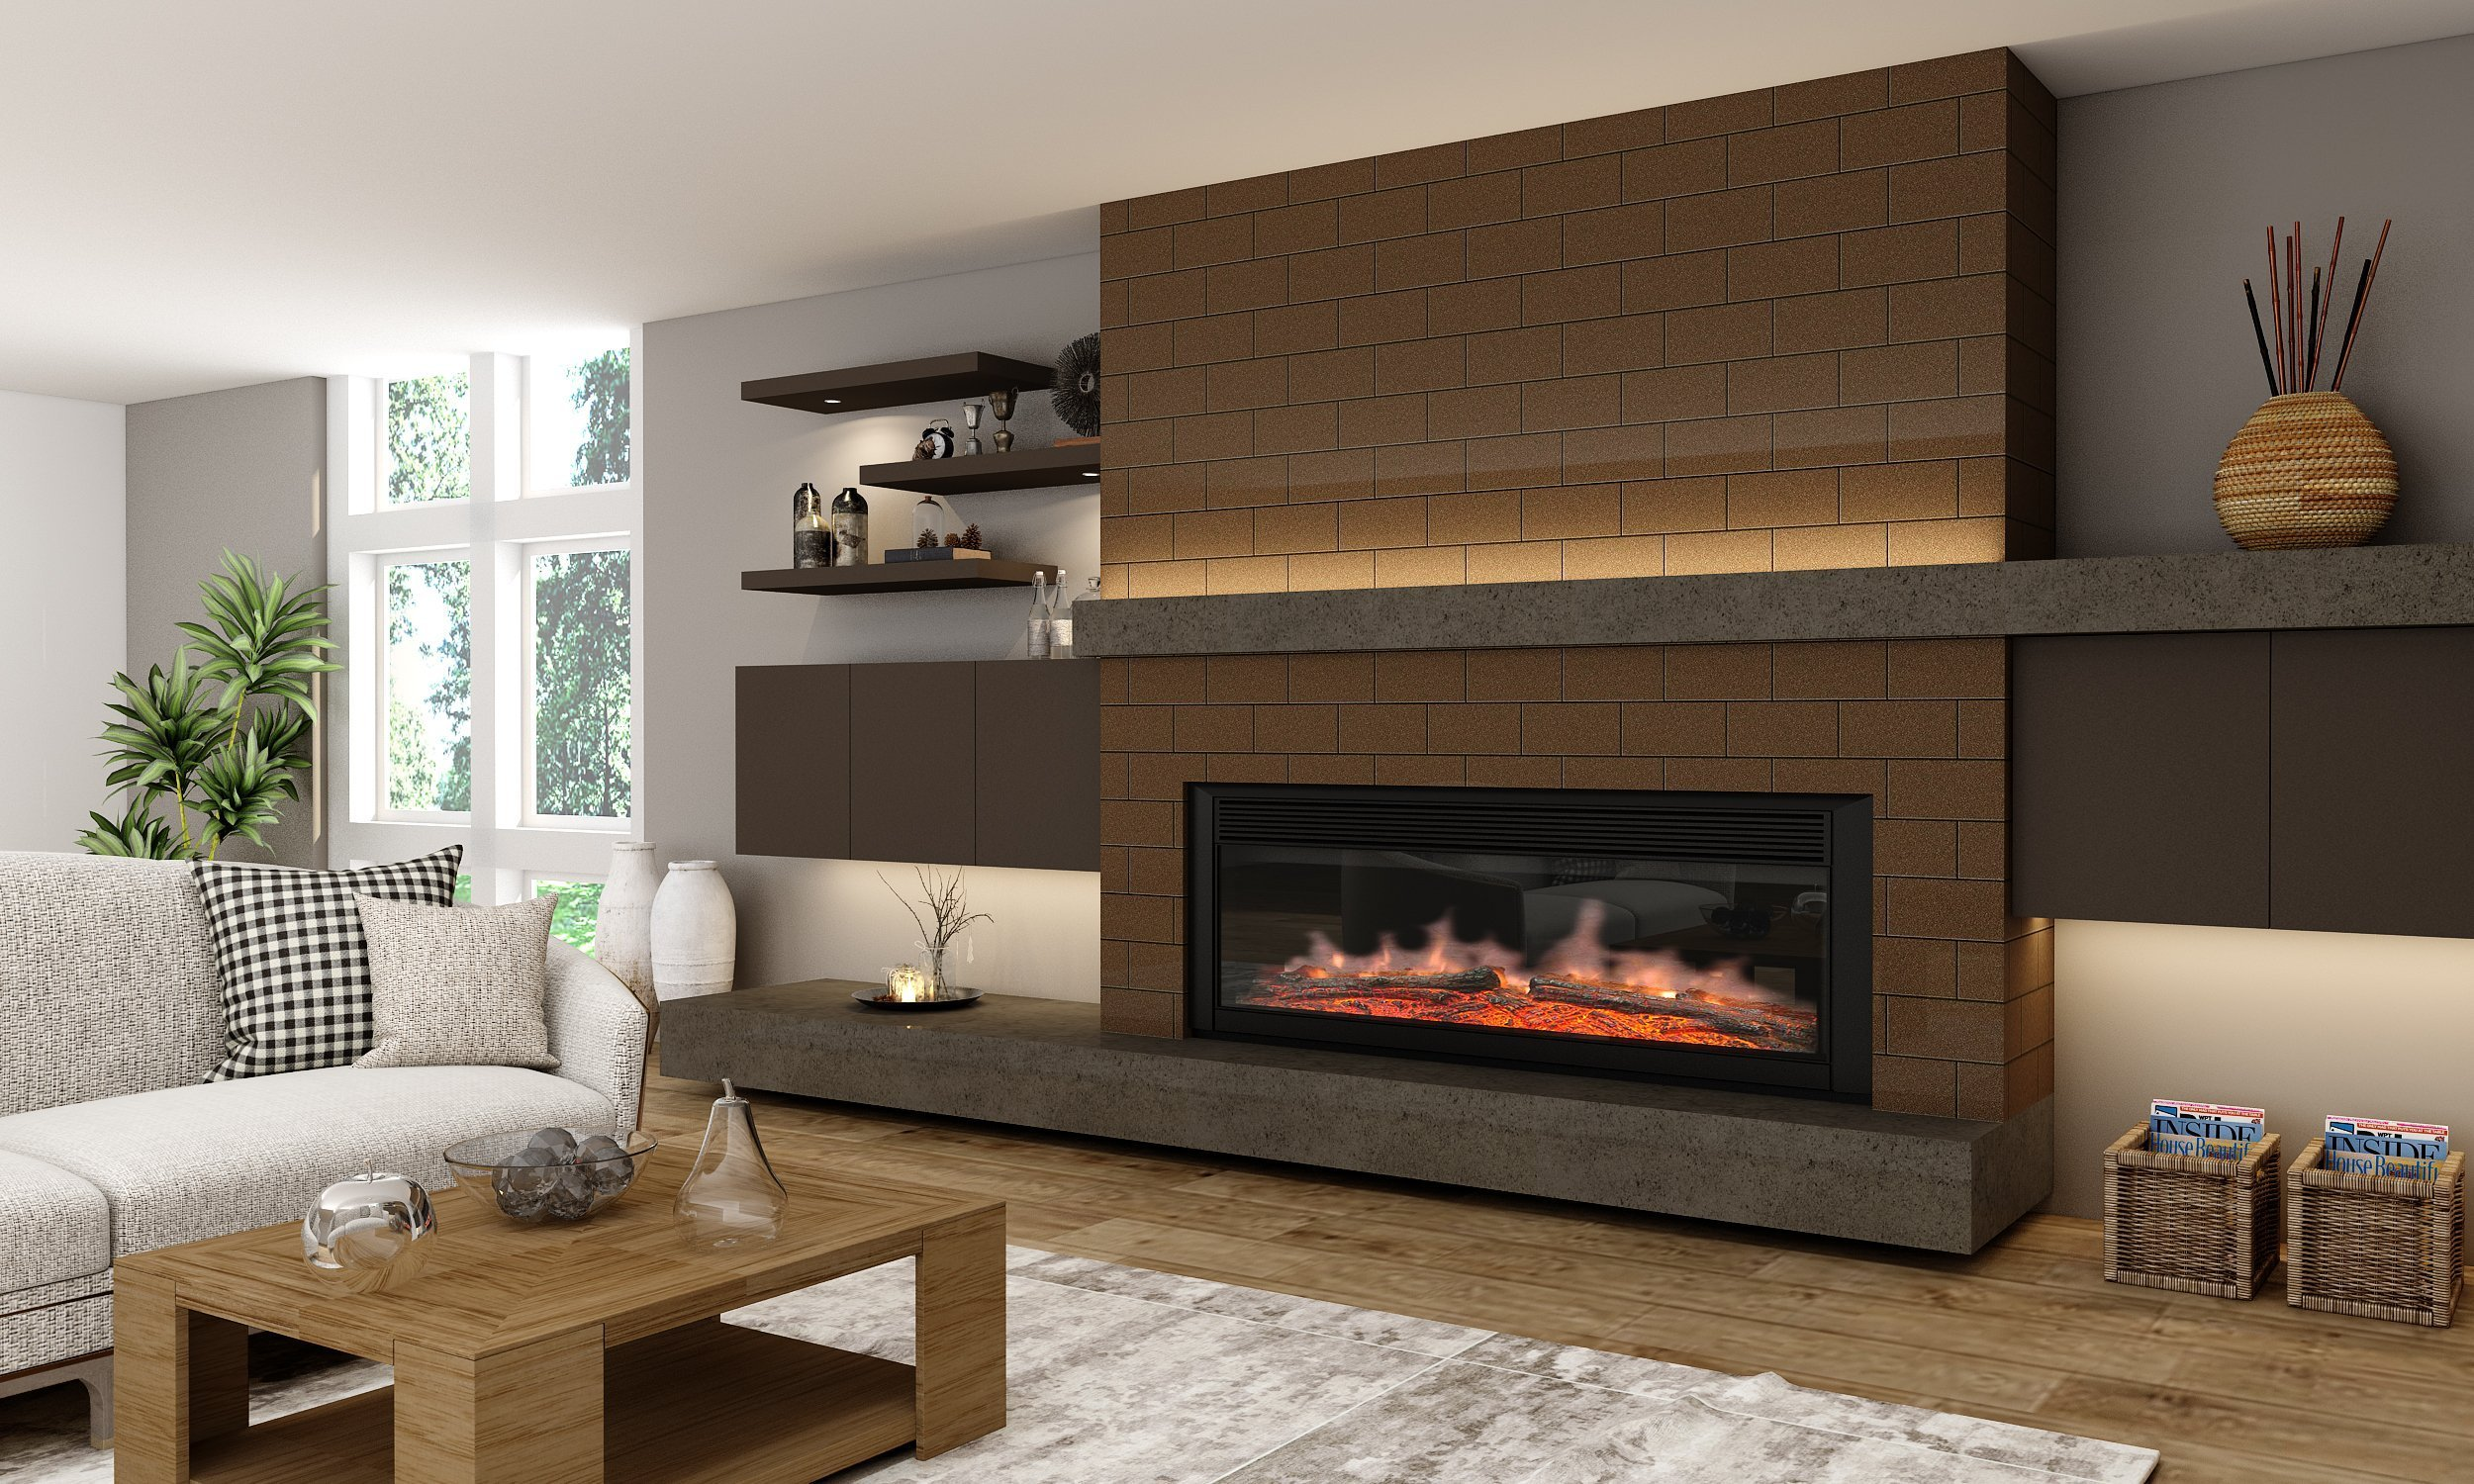 Living room alcove Design with floating shelves in Onyx grey finish (1)